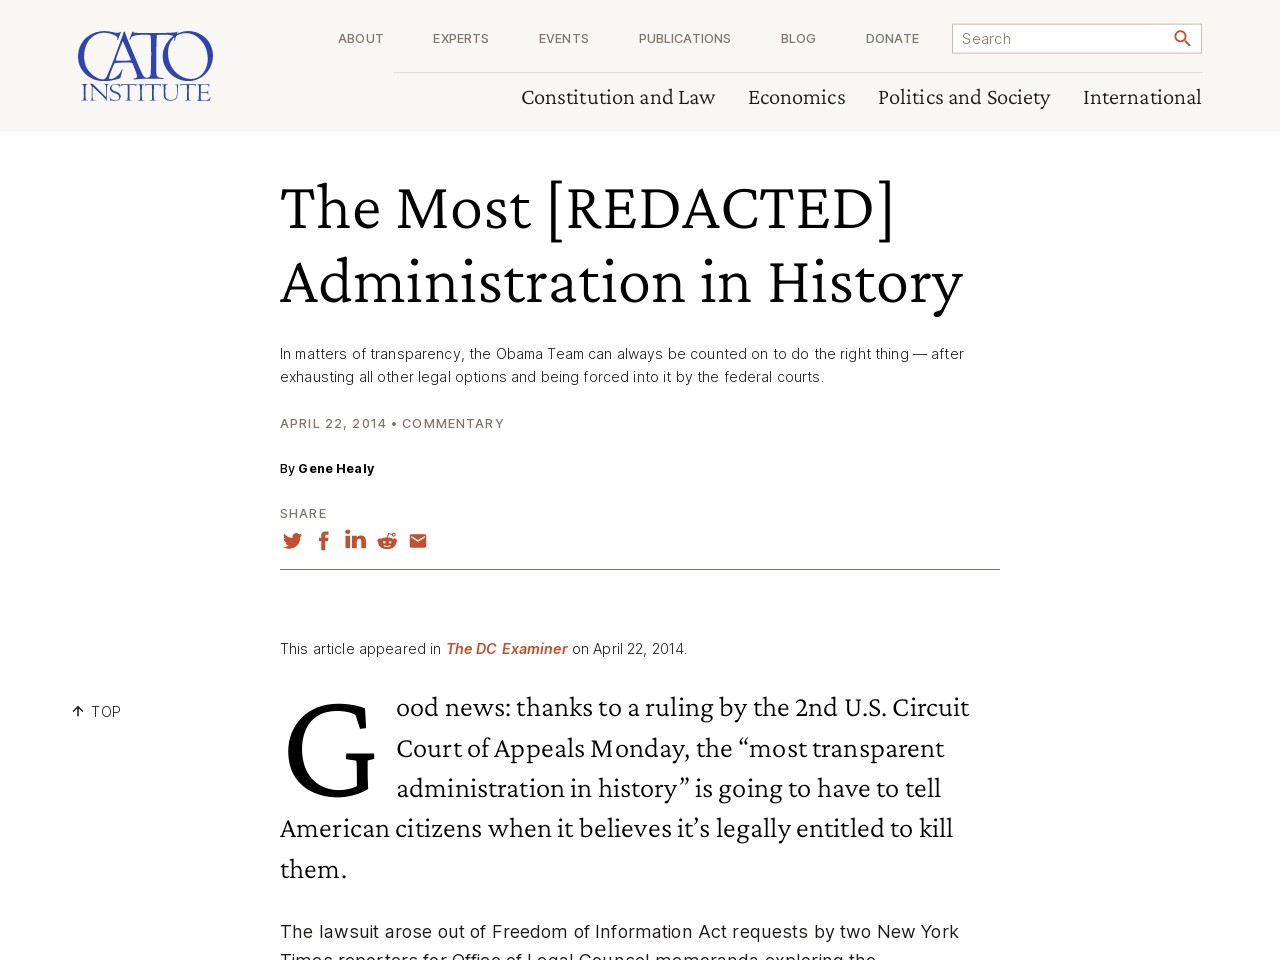 The Most REDACTED Administration In History